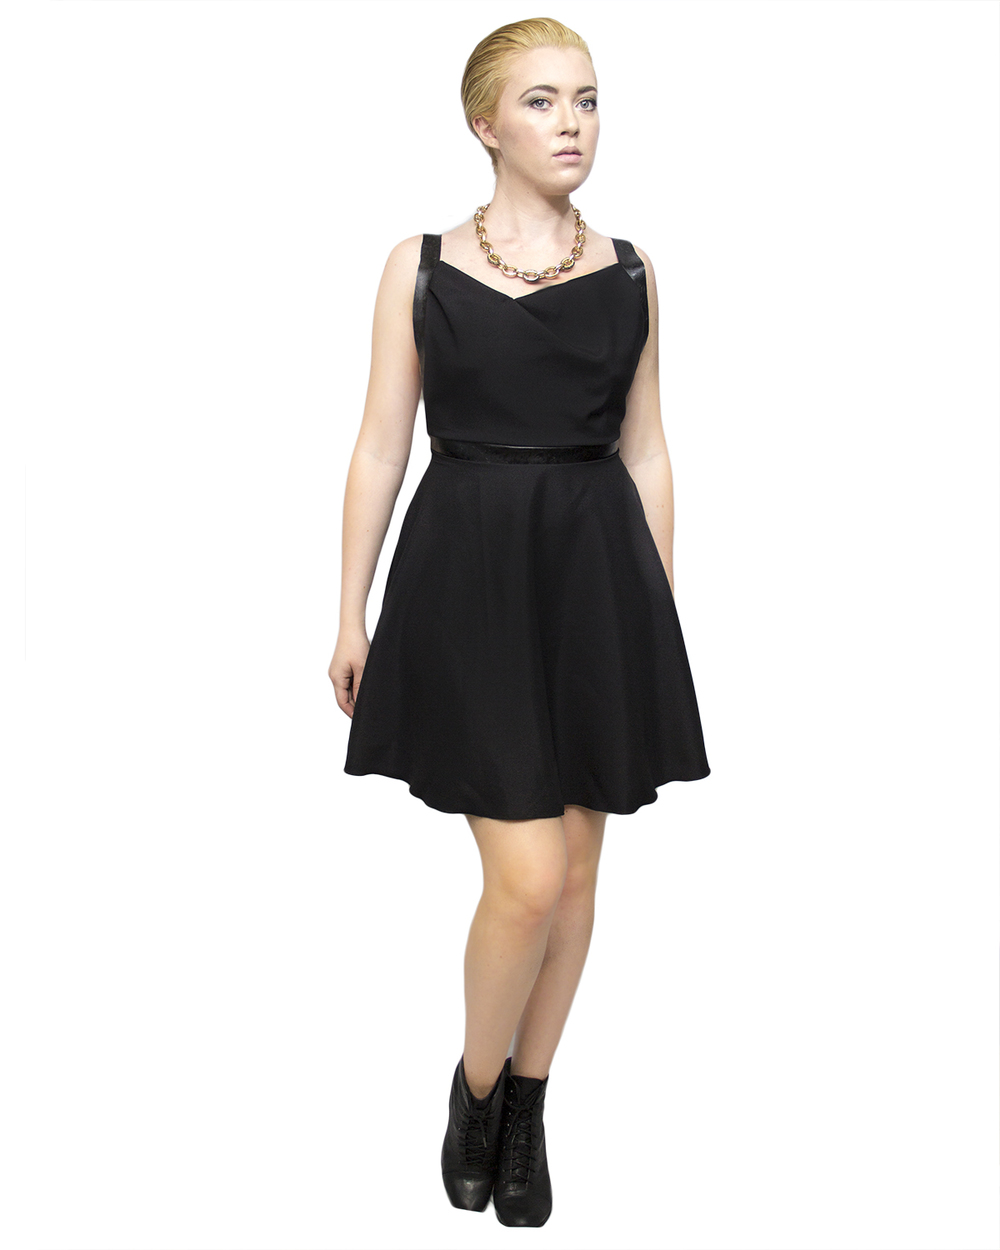 Little Black Dress Front - Line Sheet.jpg